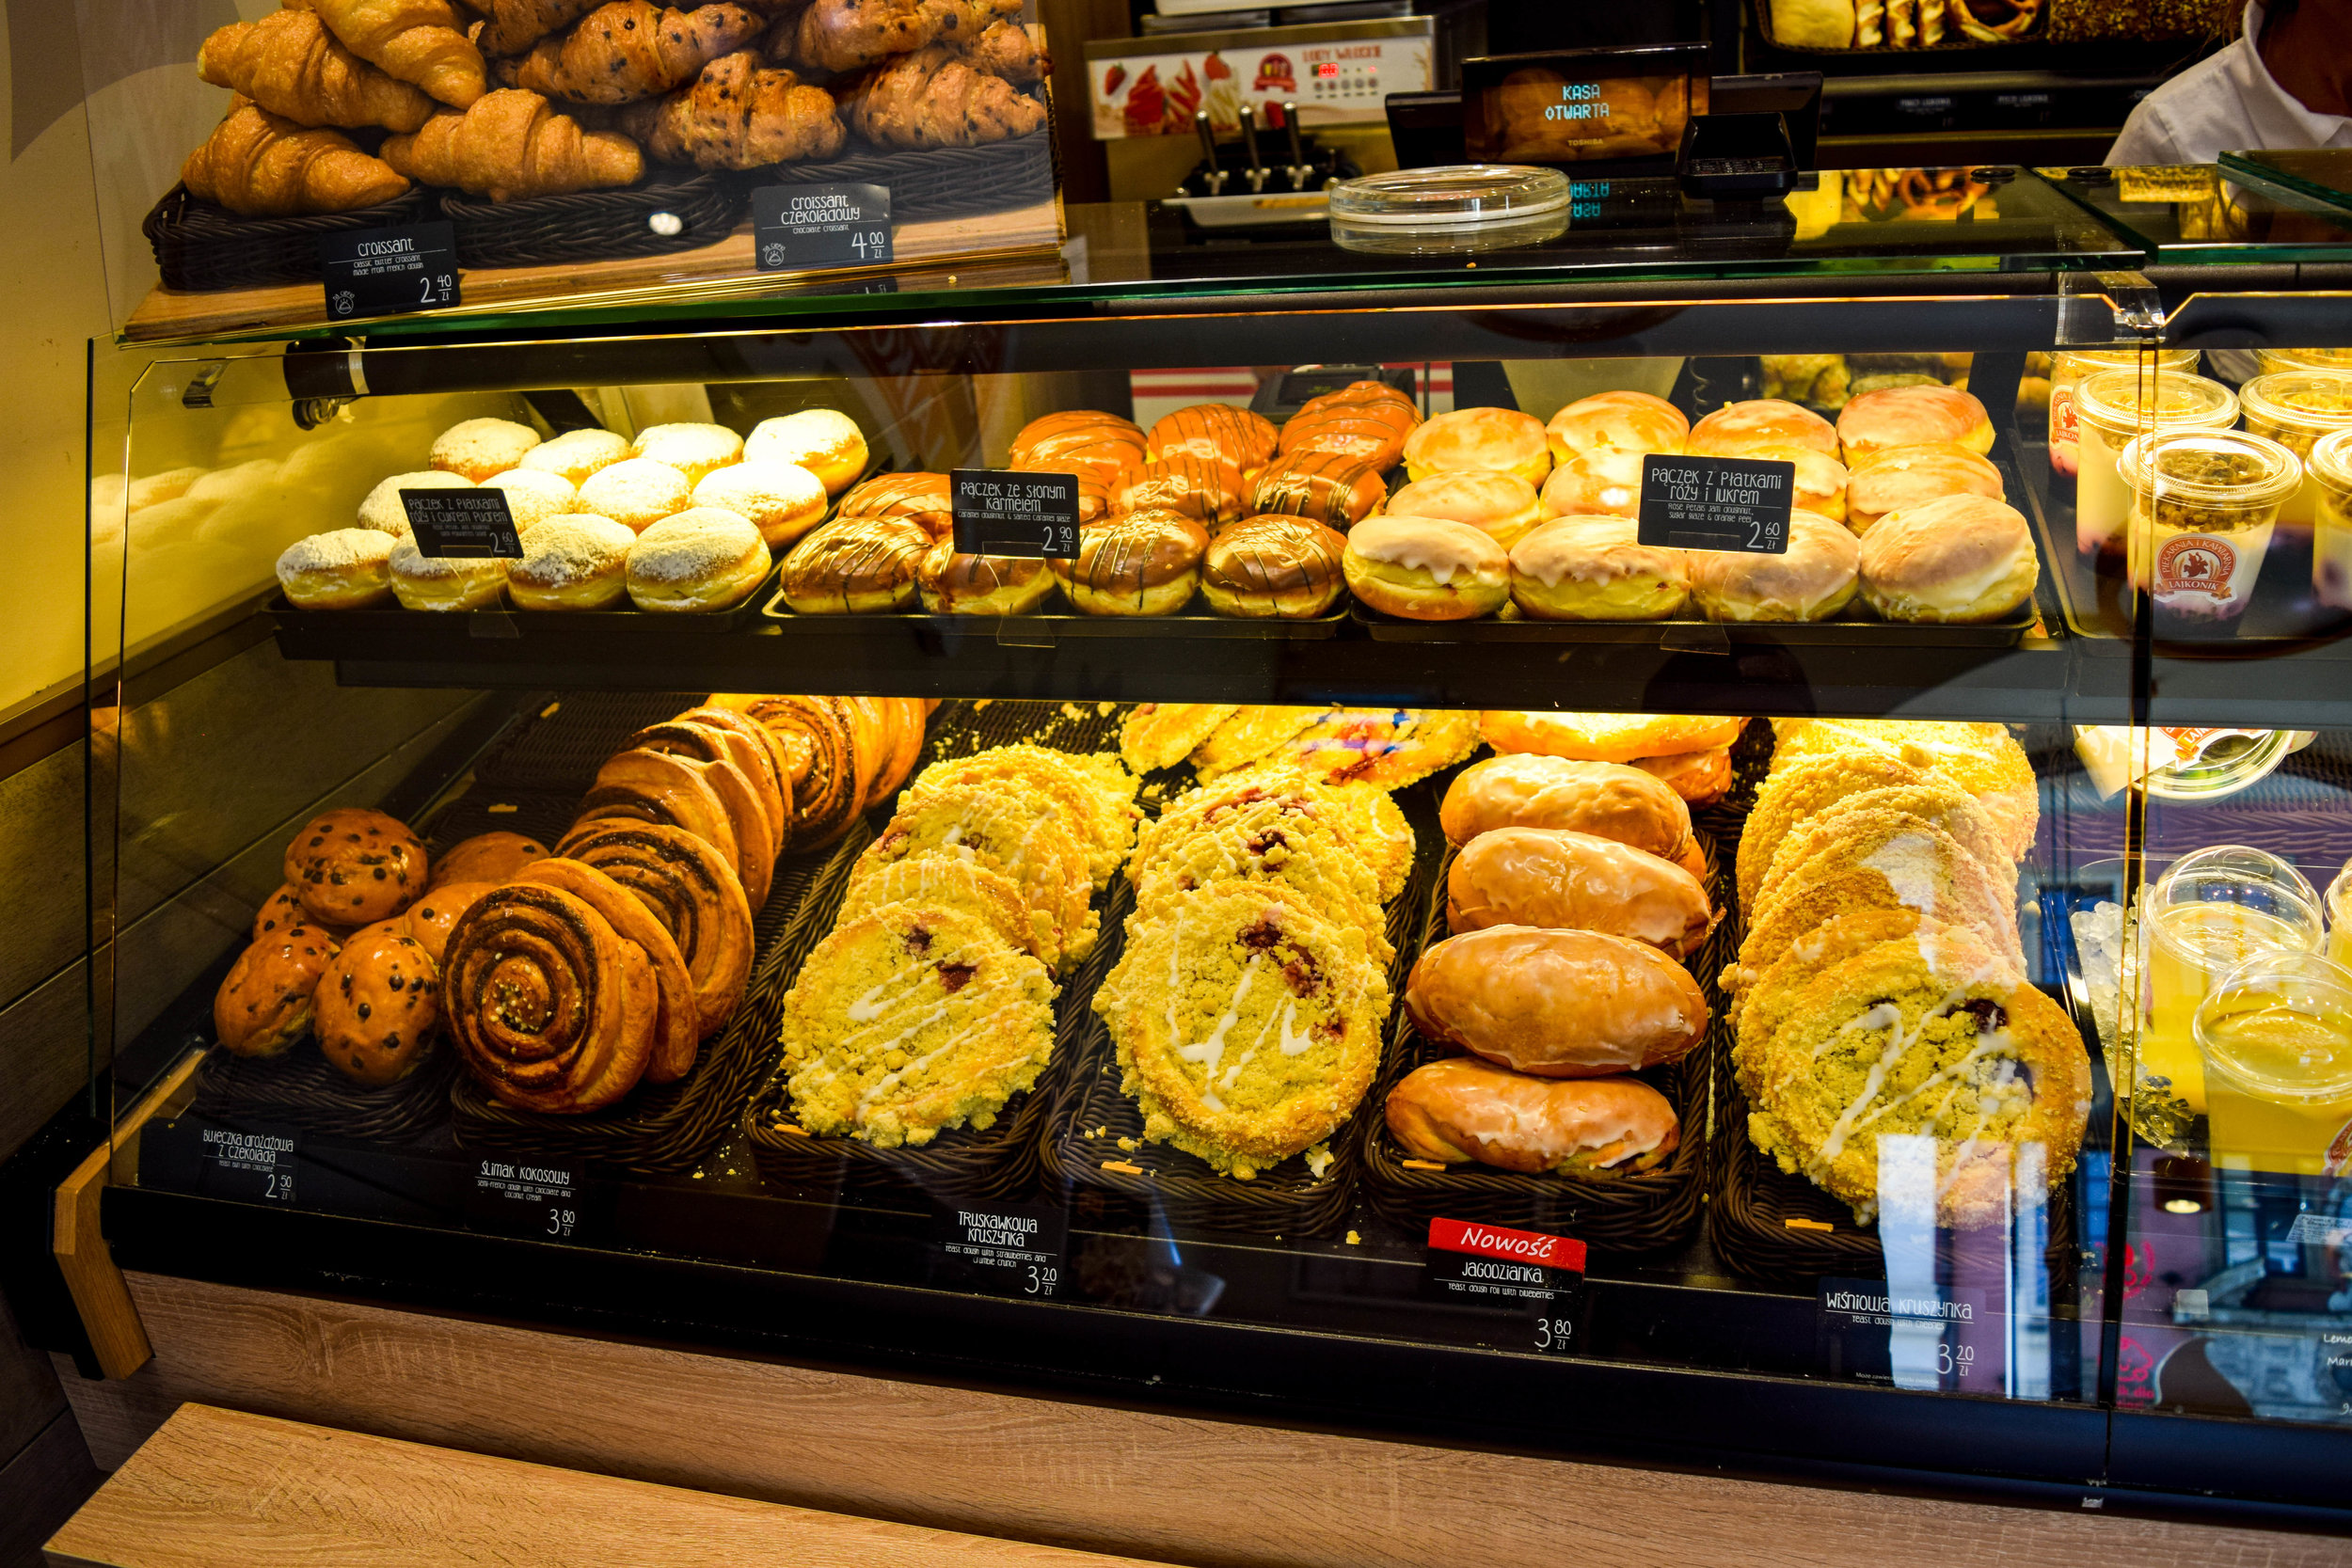 We went to this bakery every morning, can't get enough of those paczkis!